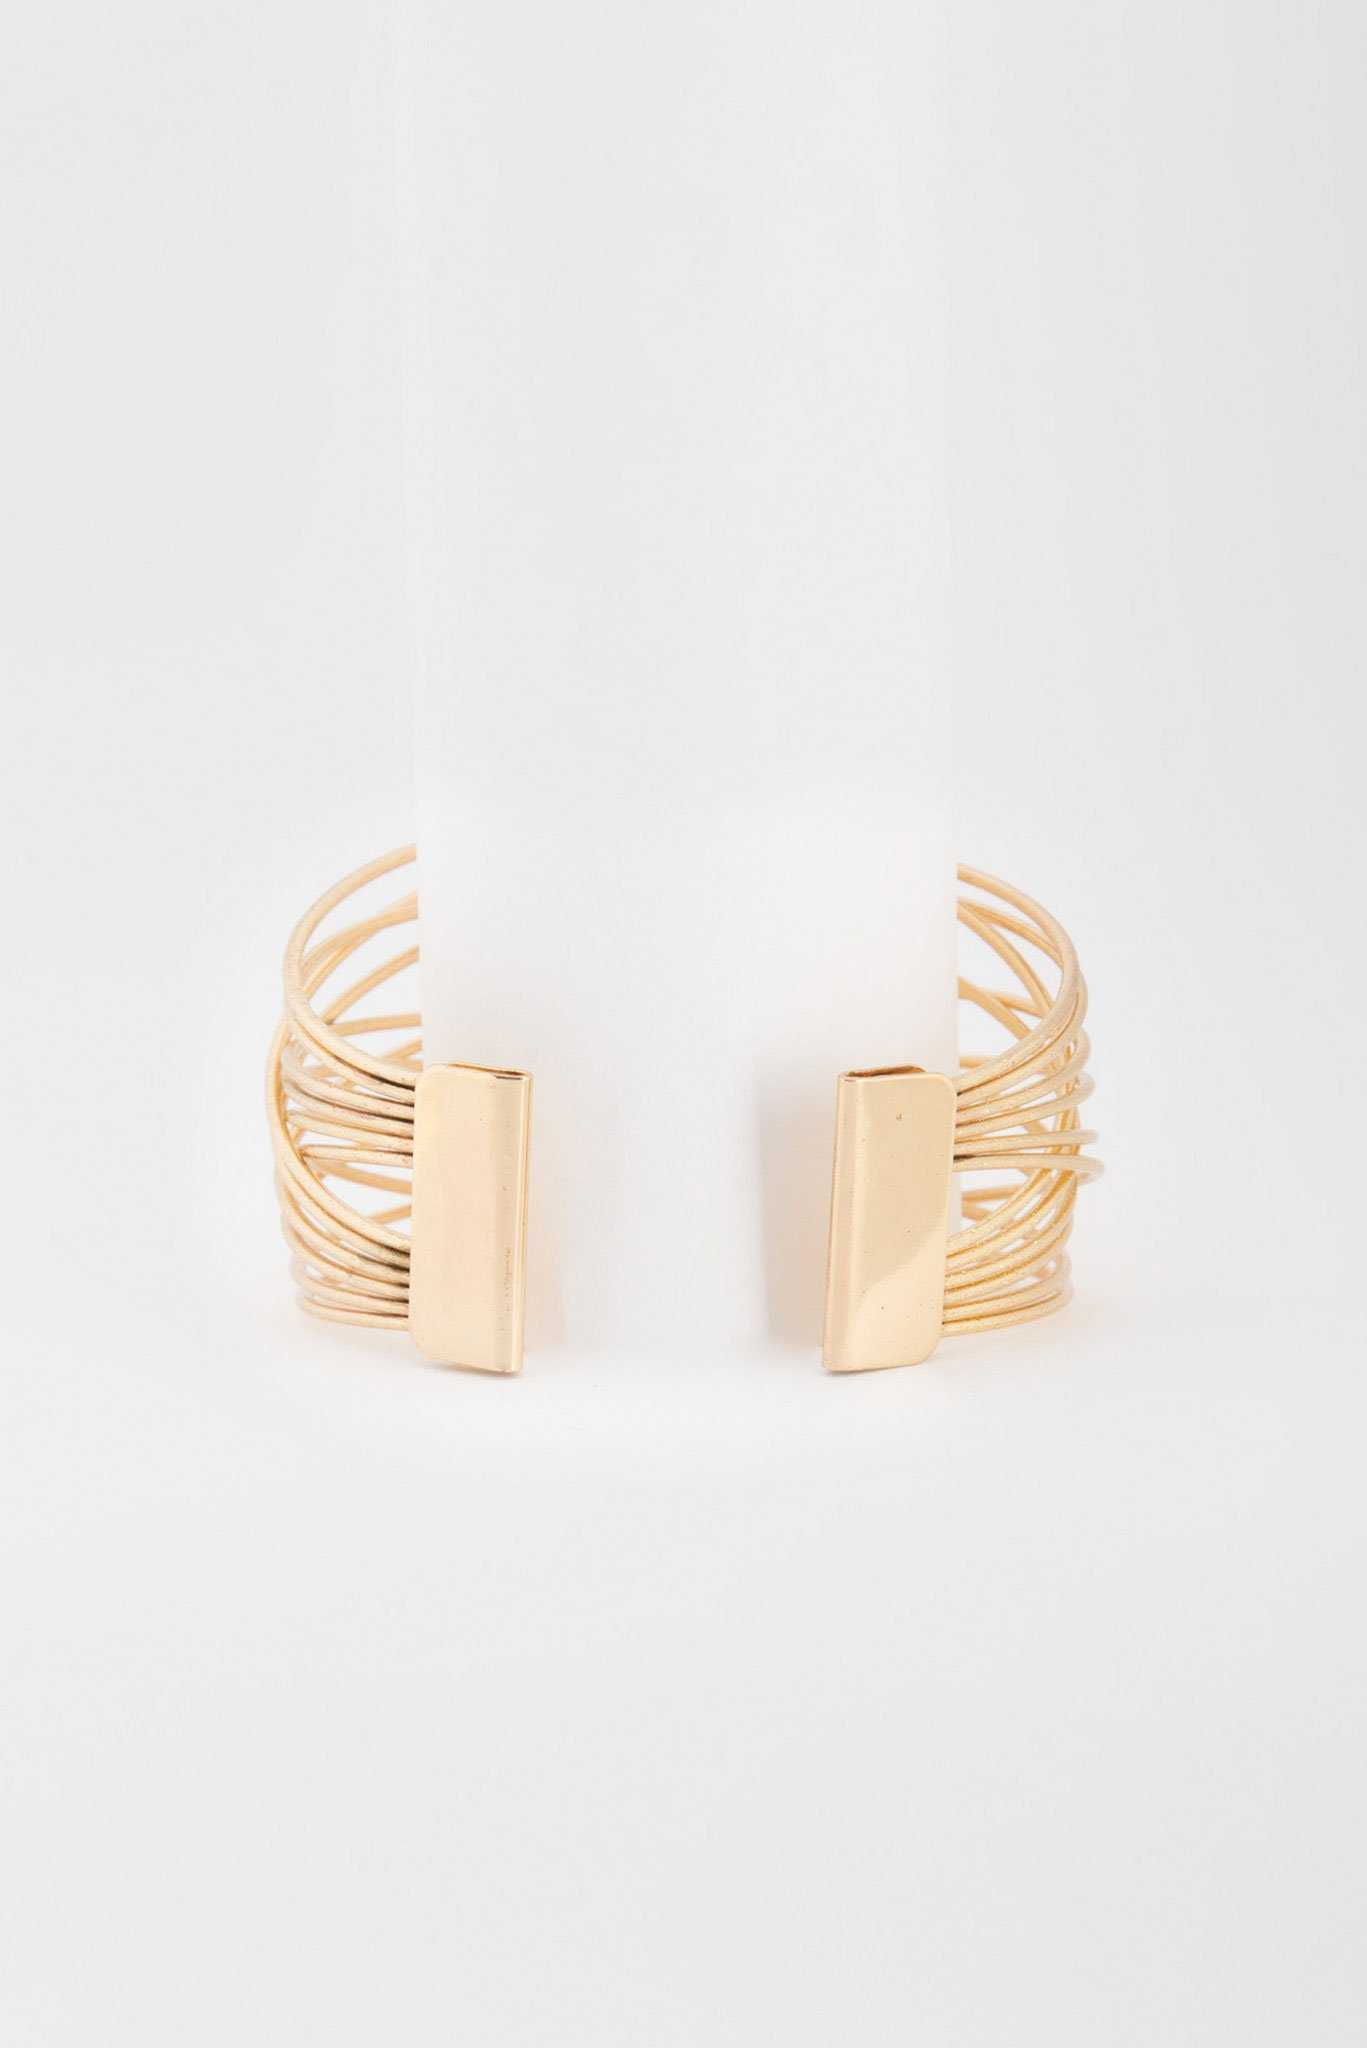 Entangled Bangles- Gold | Raw Orange